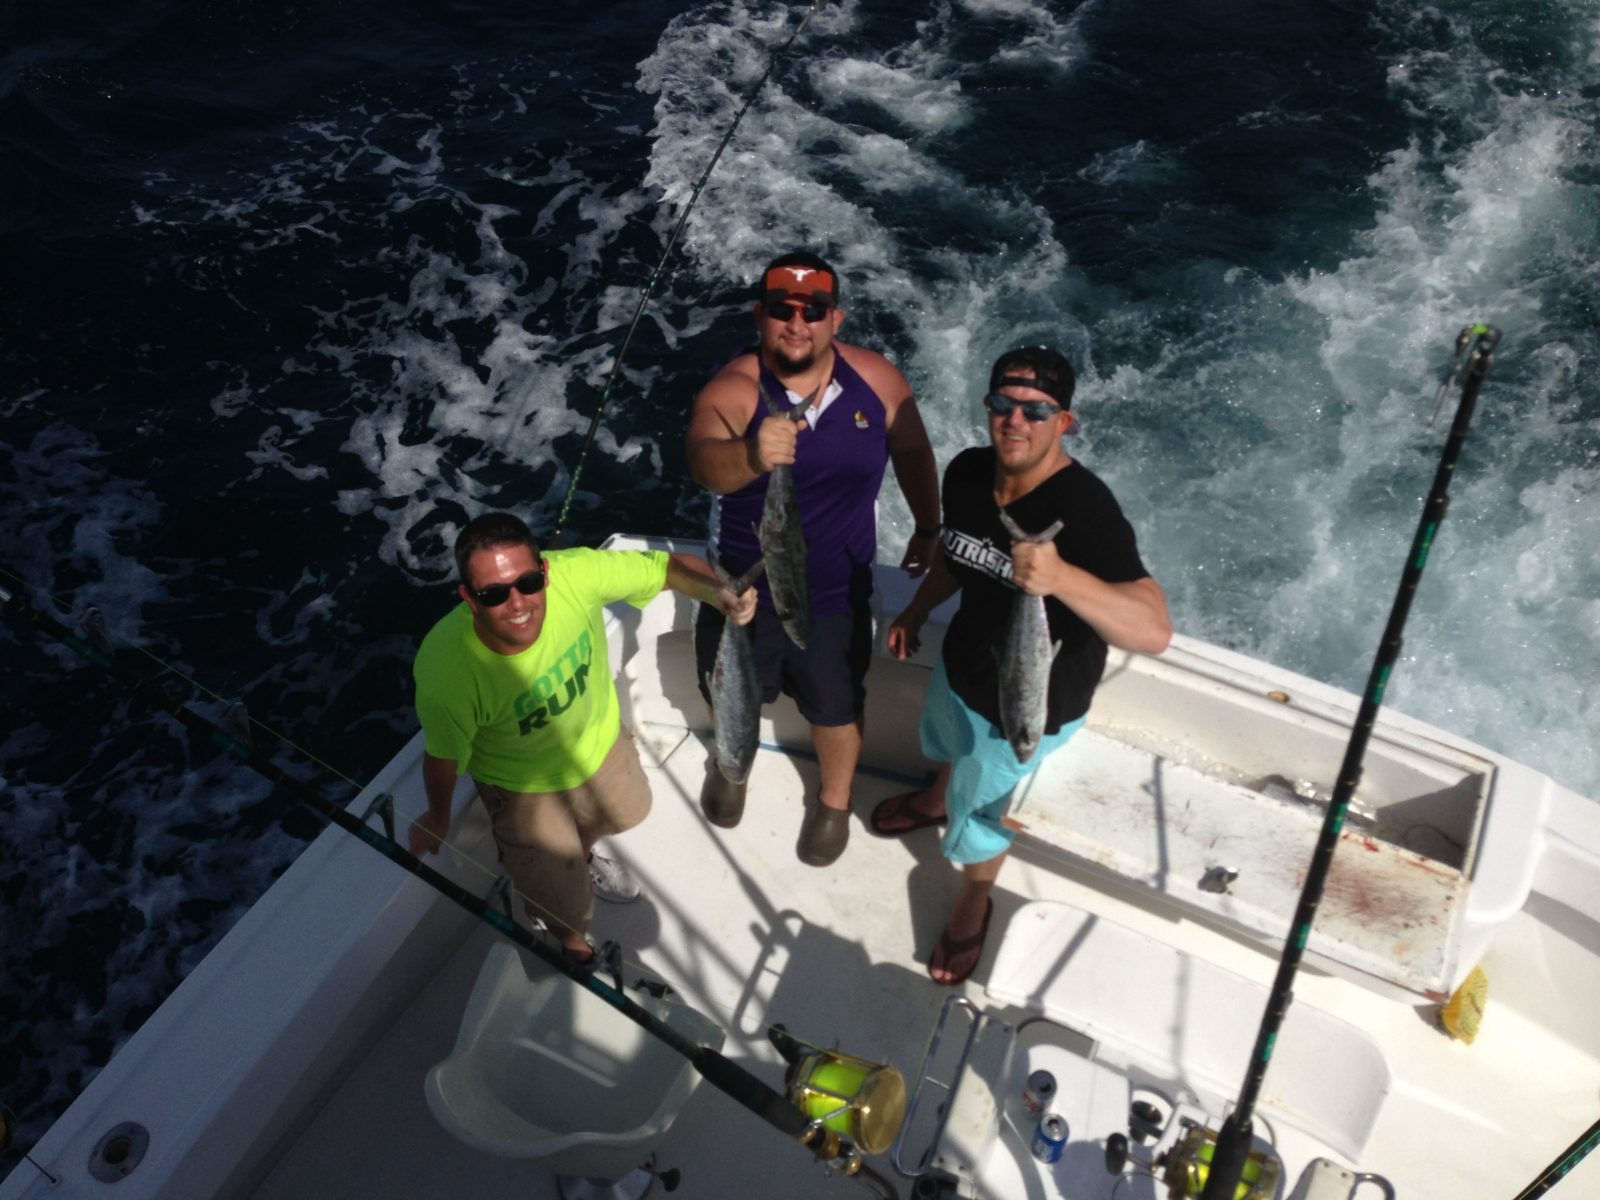 Fishing with the guys from Planet Fitness